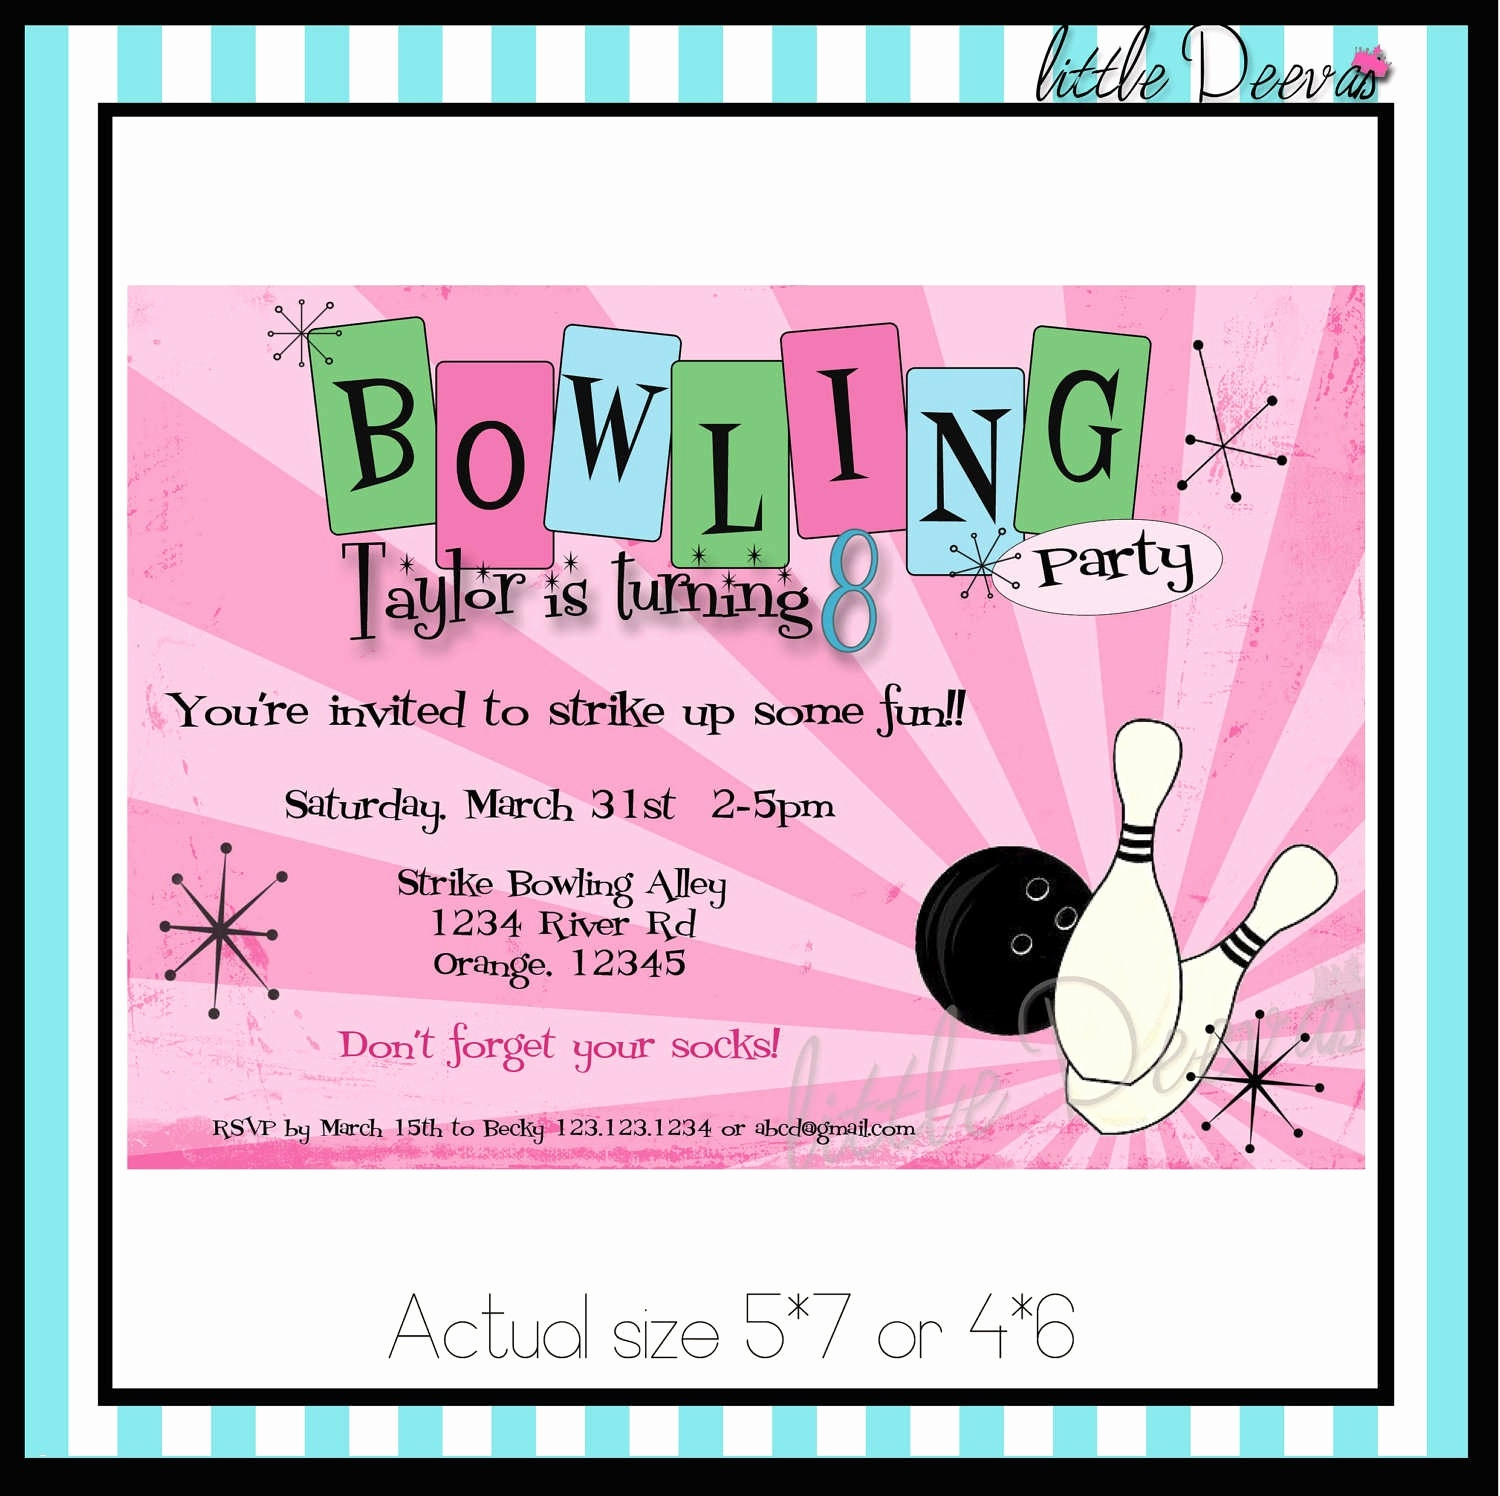 Bowling Party Einladung Inspirierend Bowling Birthday Party Invitation Template Reference 34 Best Kids